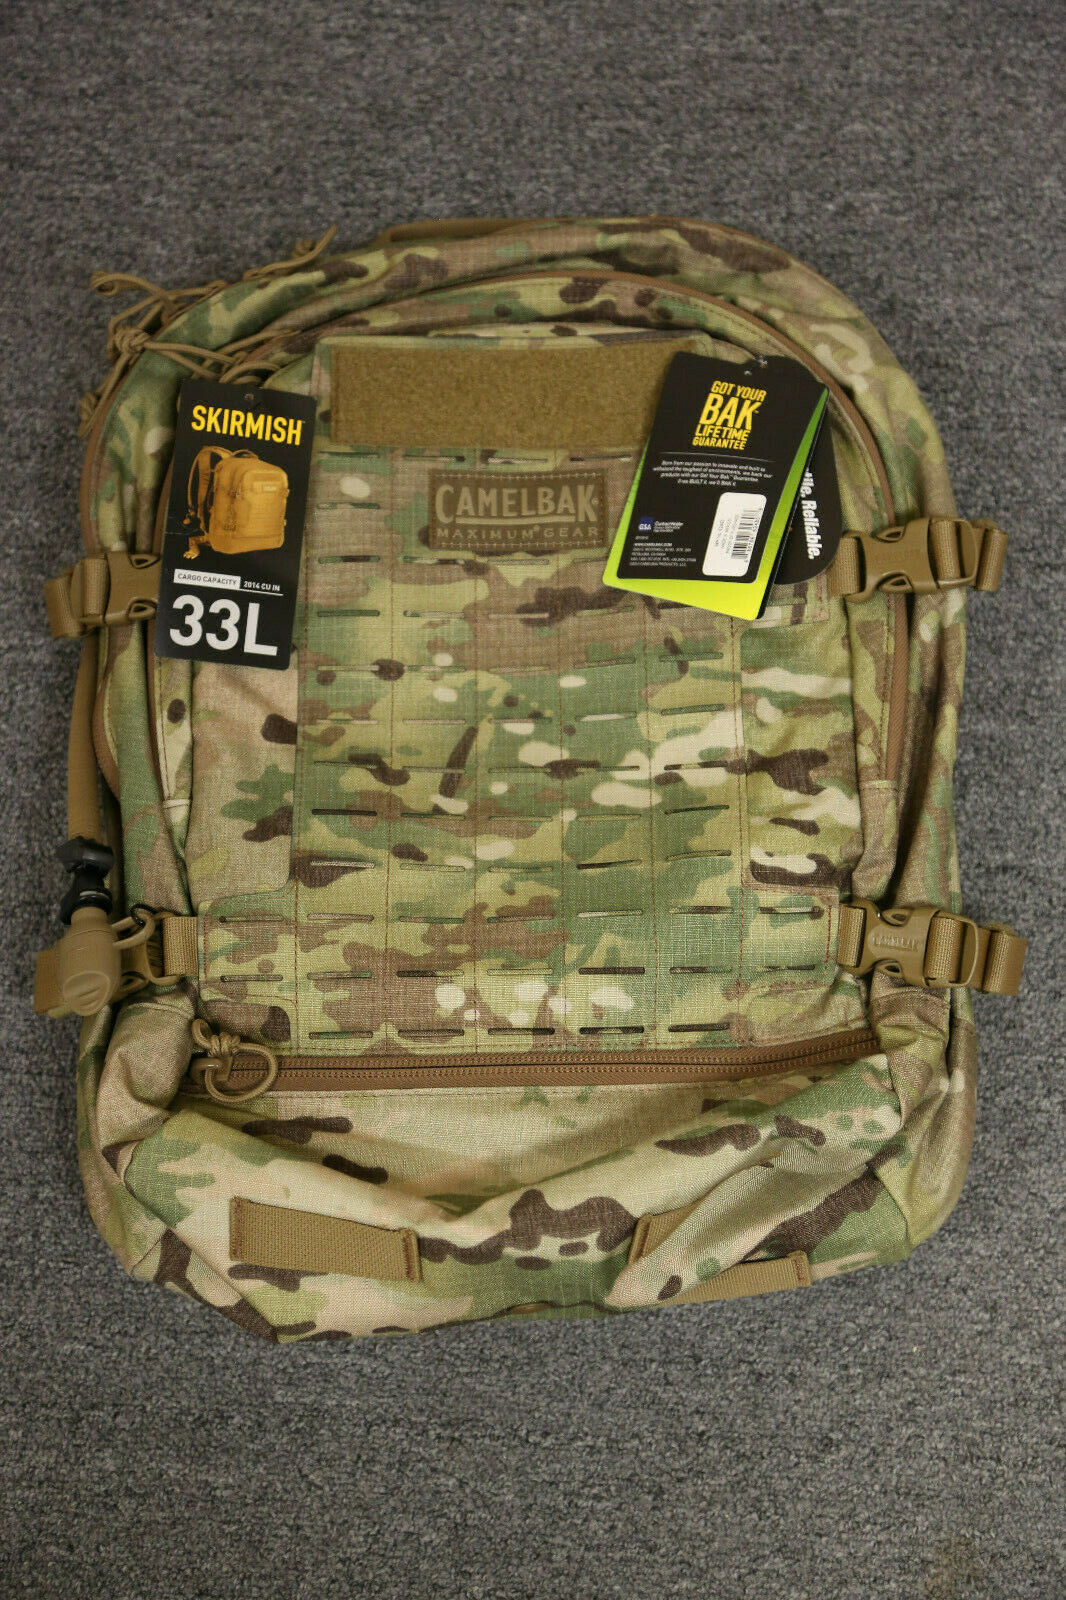 Camelbak Skirmish  100 oz Hydration Milspec Bag Antidote LG  all products get up to 34% off